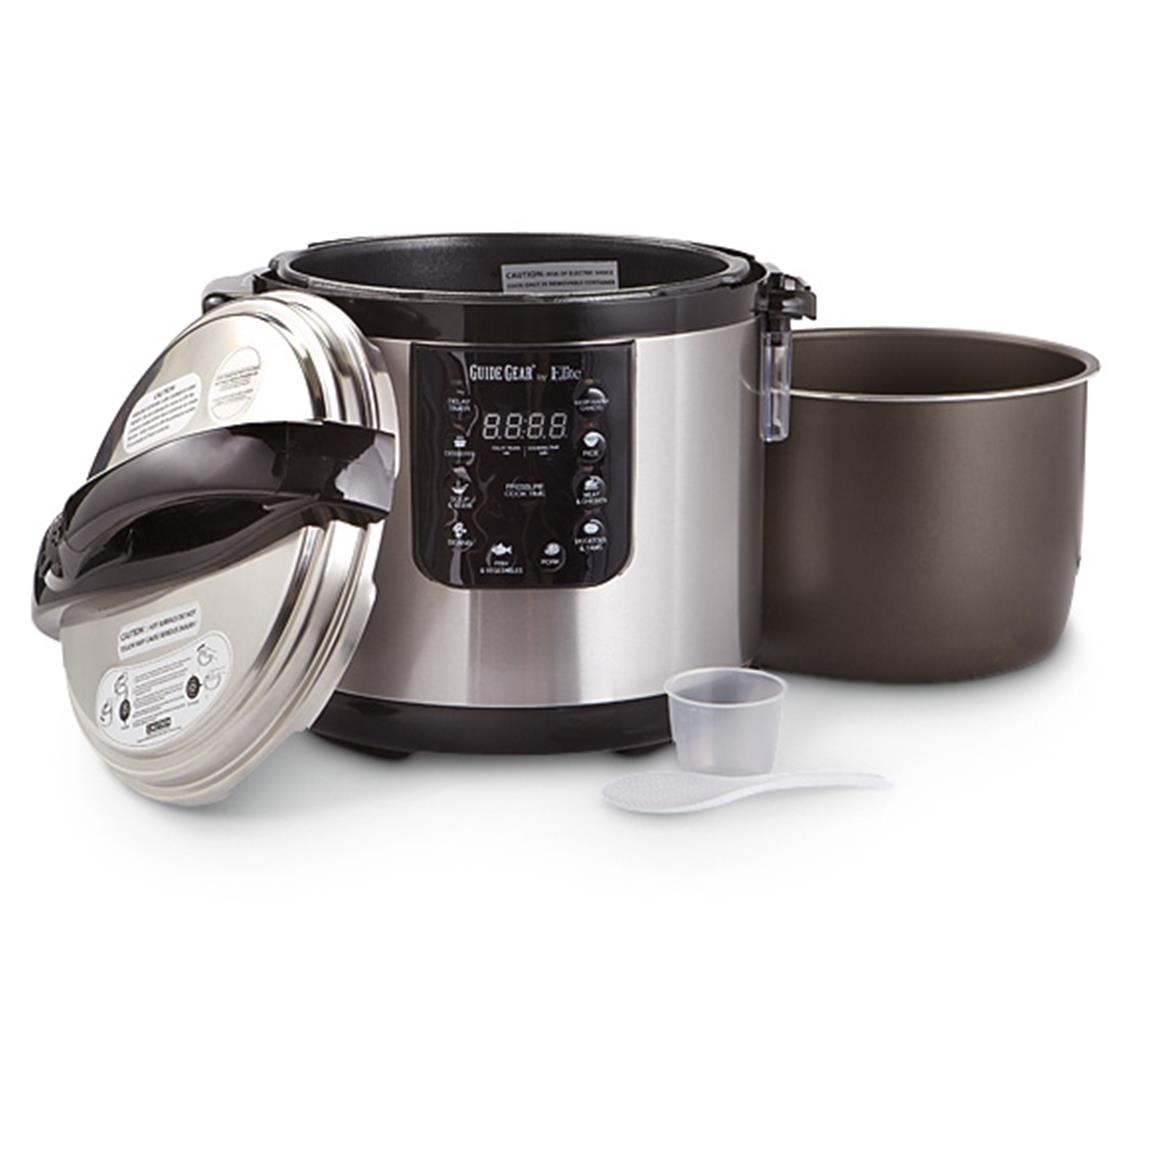 Includes removable nonstick pot, measuring cup and ladle